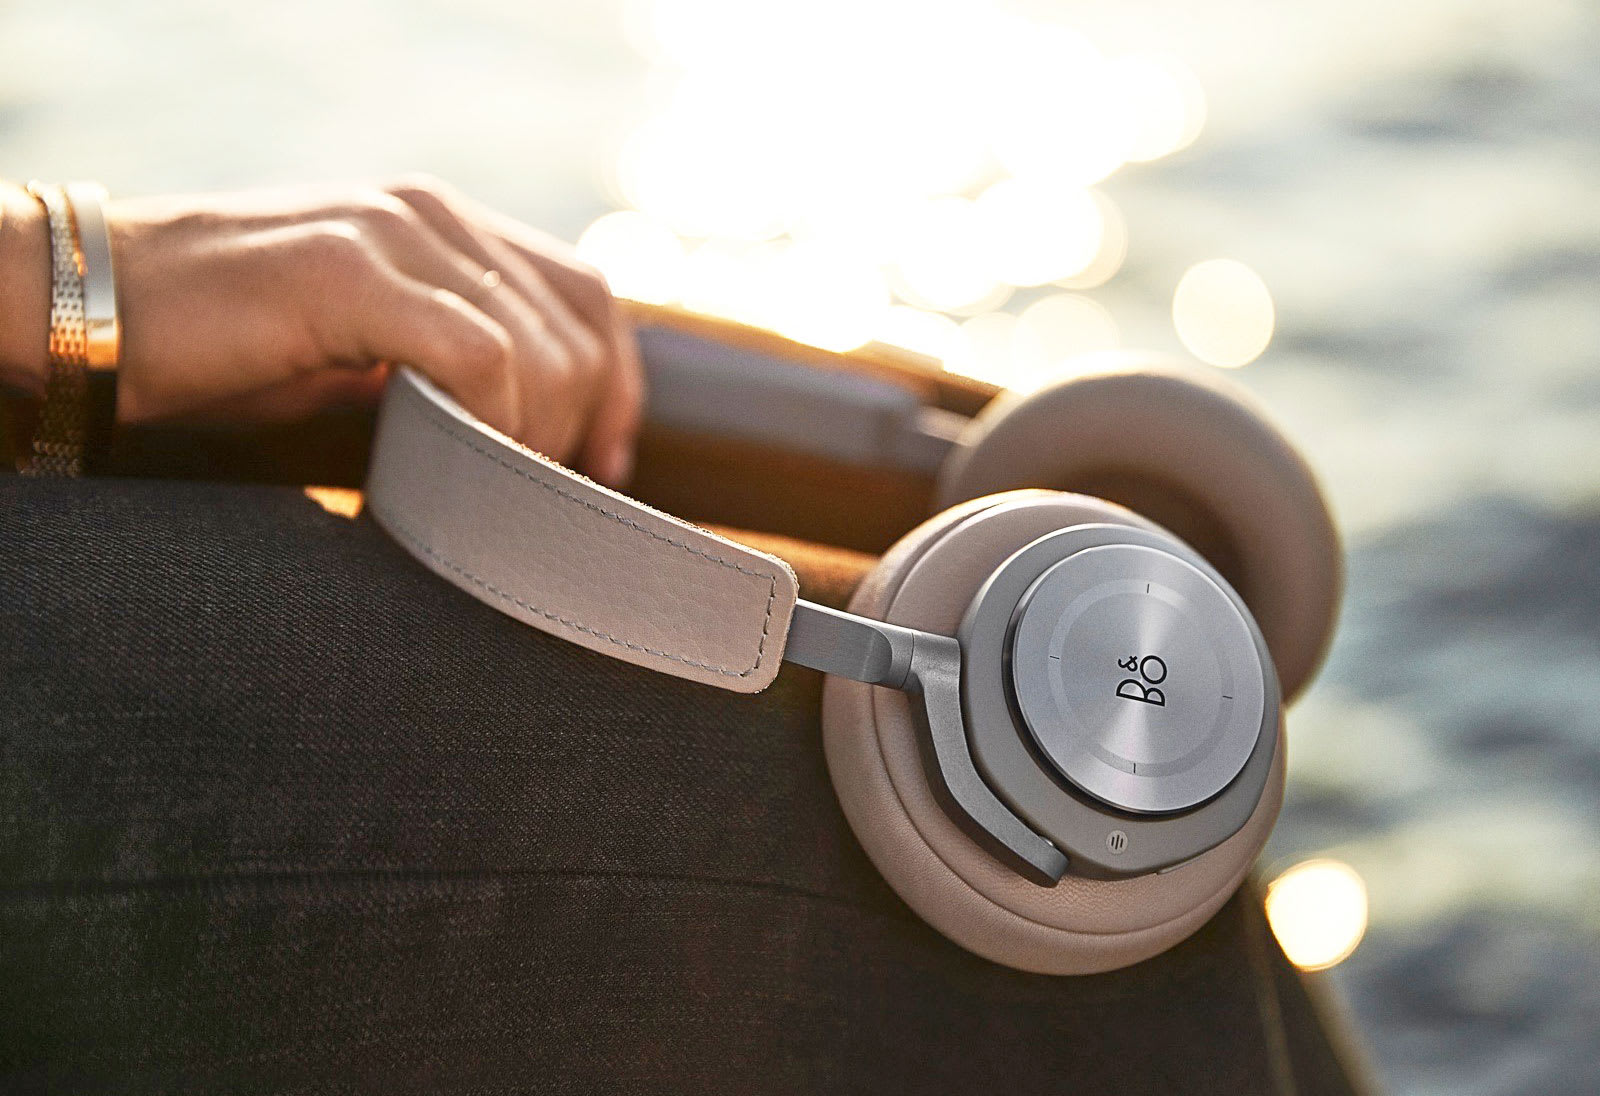 298be31f755 Bang & Olufsen debuted its wireless over-ear headphones over two years ago  and despite offering active noise cancellation (ANC) for its on-ear model,  ...